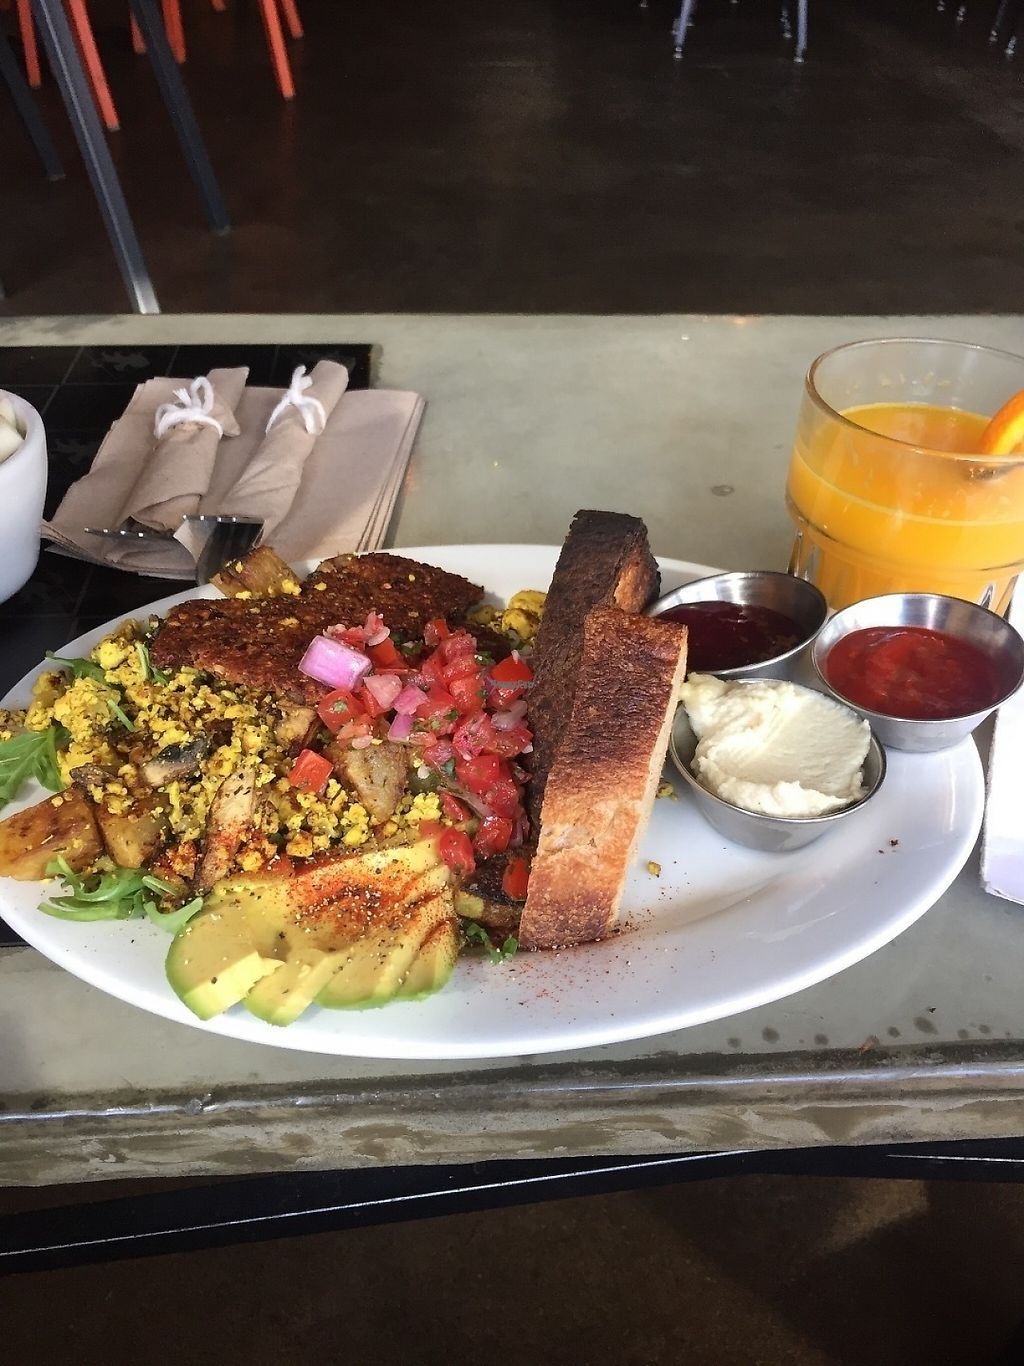 """Photo of Chimera Cafe  by <a href=""""/members/profile/KaitlynnGill"""">KaitlynnGill</a> <br/>Twinster Vegan Plate- tofu scramble with mushrooms and potatoes, pico, house made mock bacon, avocado on a bed of arugula with toasted bread and sides of cashew cheese, strawberry jam and hot sauce. And house squeezed oj :) <br/> April 24, 2017  - <a href='/contact/abuse/image/84350/252060'>Report</a>"""